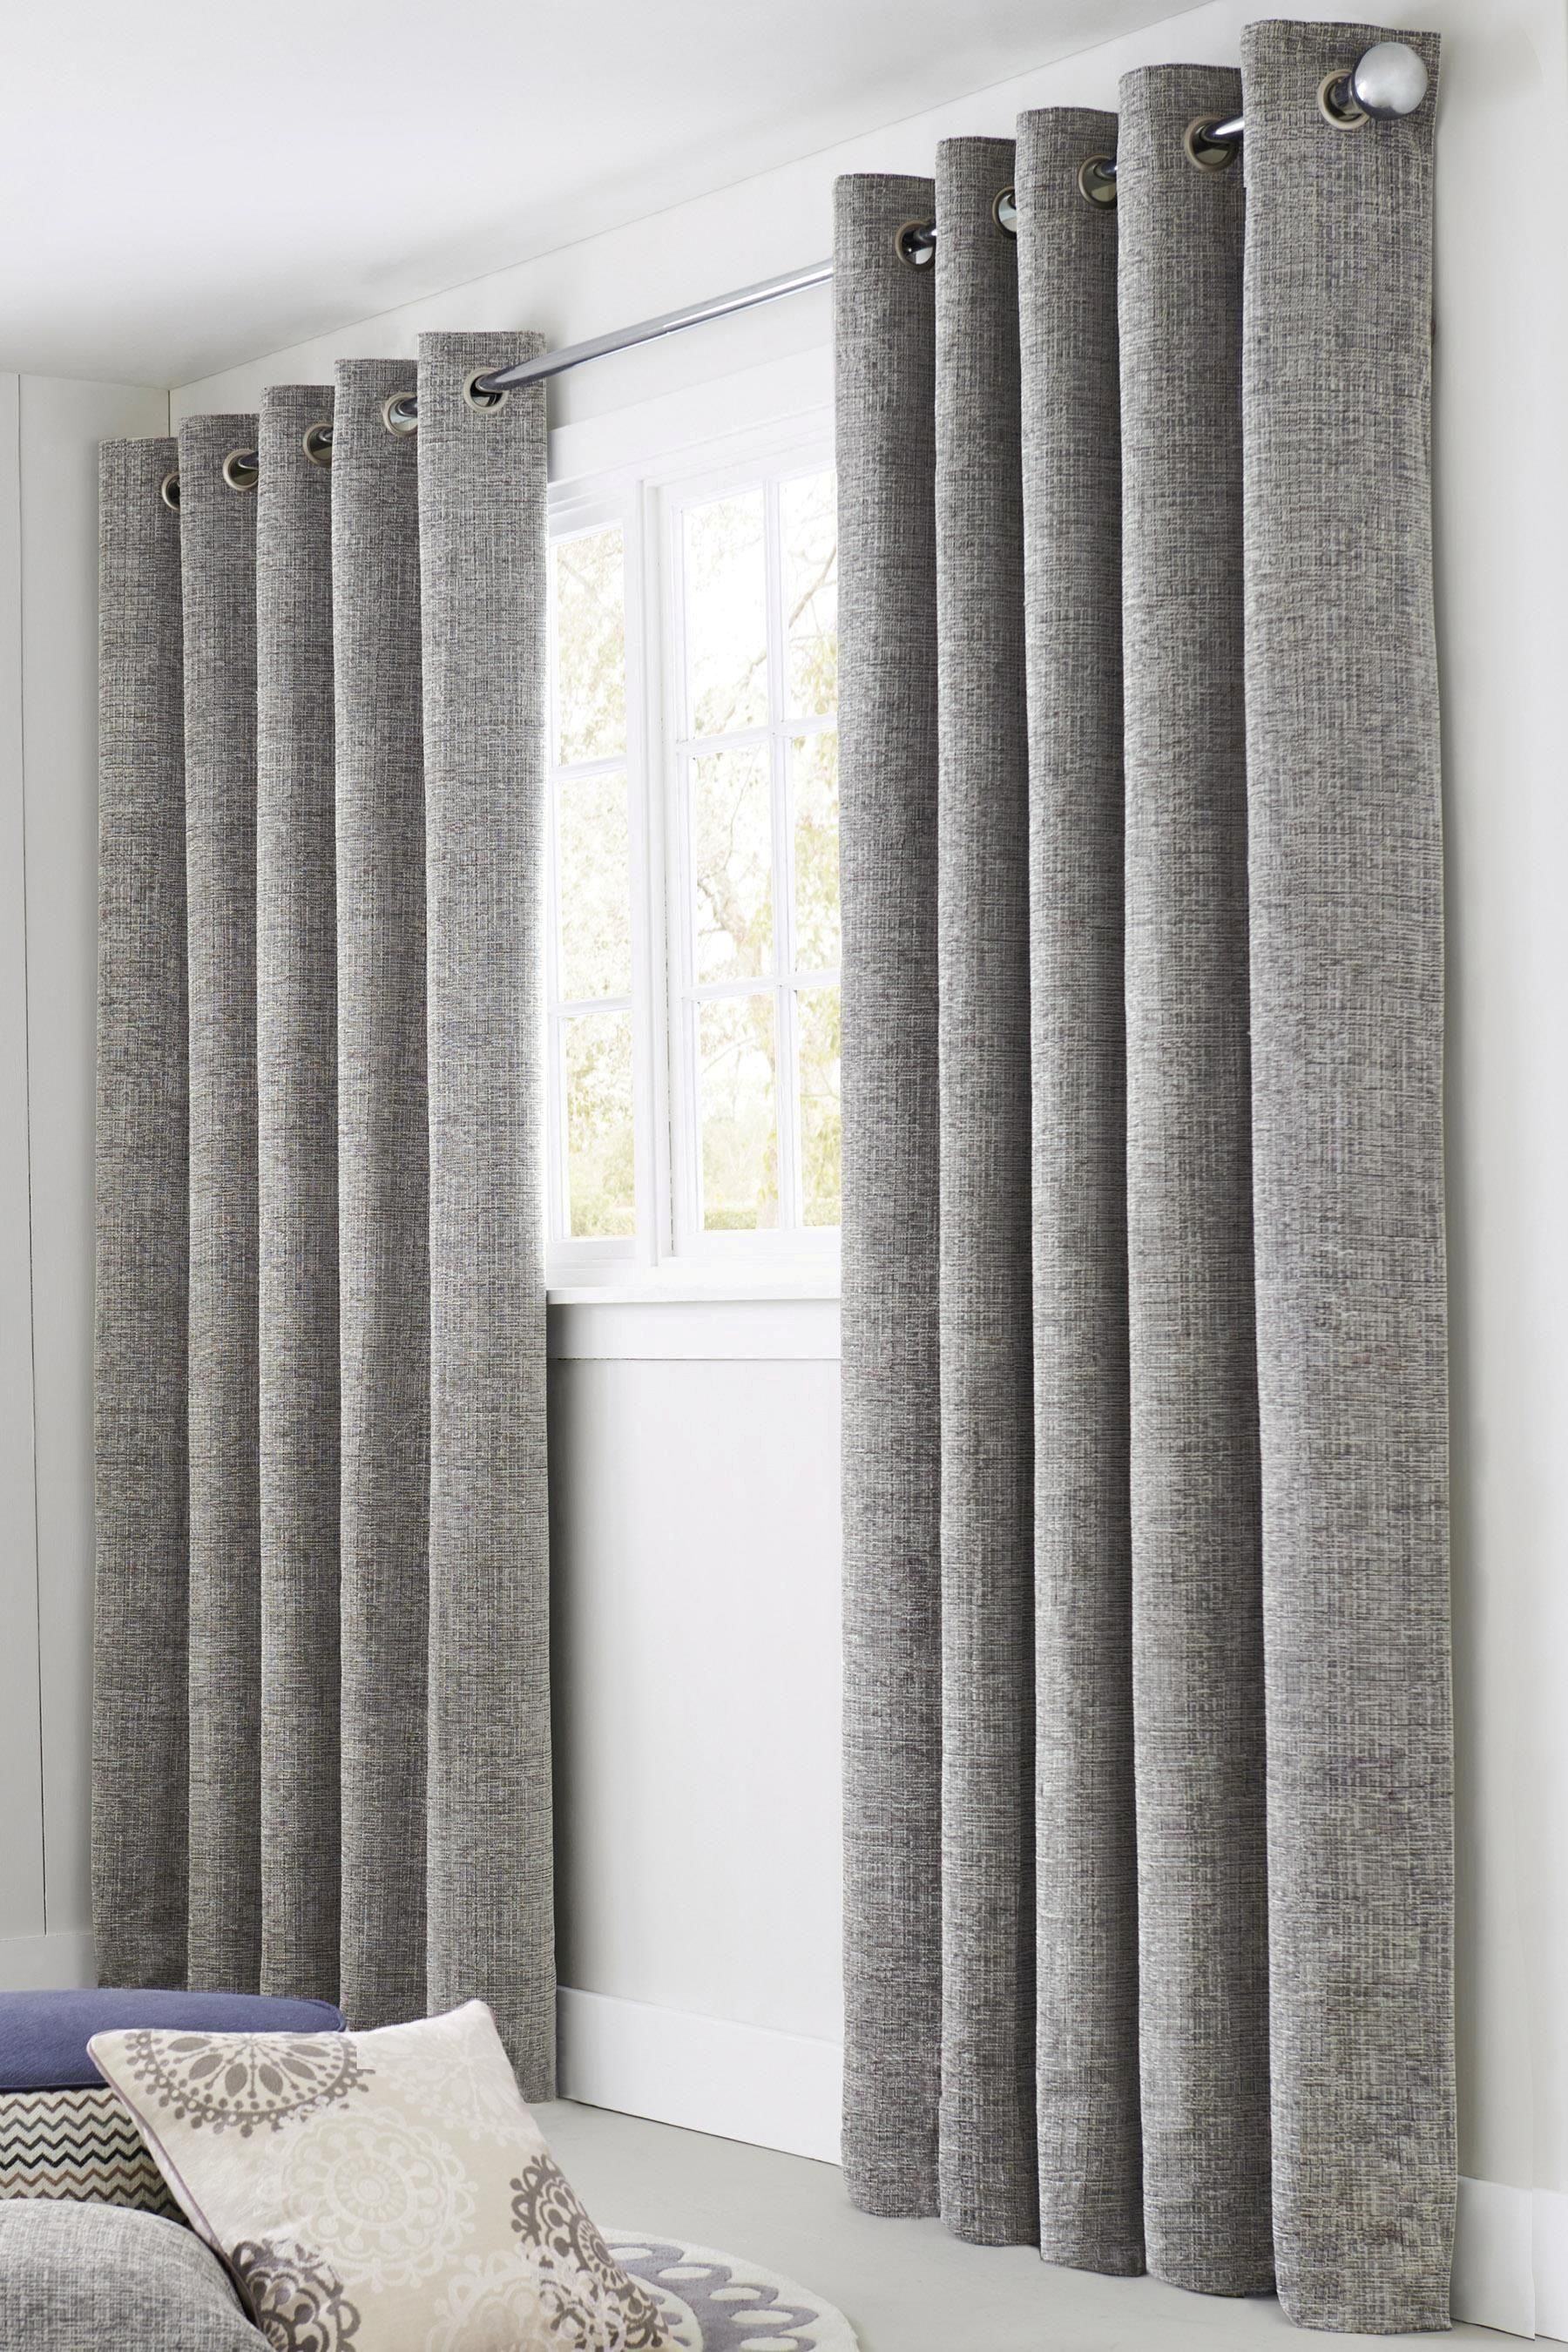 Living Room Curtain Ideas Uk Diy Christmas Decorating Buy Silver Textured Chenille Eyelet Curtains From The Next Online Shop